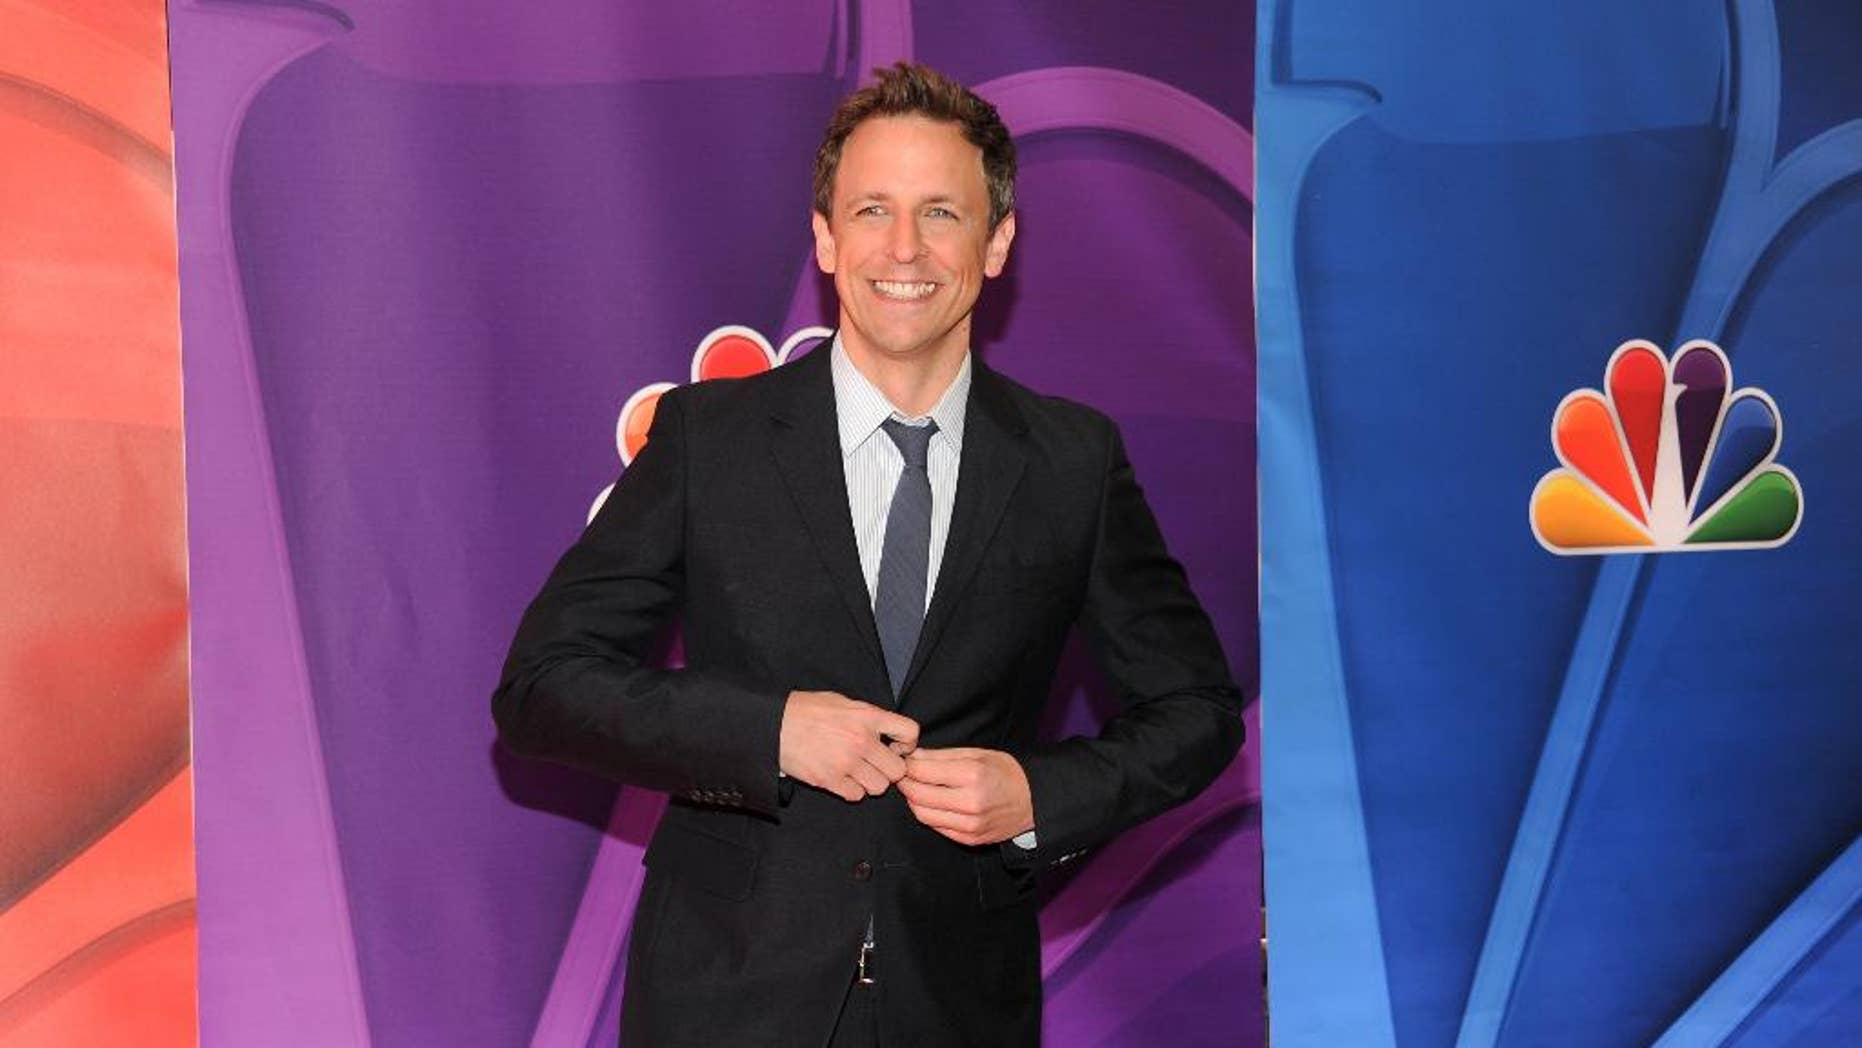 """FILE - Seth Meyers attends the NBC Network 2013 Upfront at Radio City Music Hall, in this May 13, 2013 file photo taken in New York. NBC, home to Meyers in his long stint on """"Saturday Night Live"""" and his new late-night talk show, announced late Thursday April 24, 2014 that he'll host the 66th edition of the Emmys set to air on the network August 25. (Photo by Evan Agostini/Invision/AP, File)"""